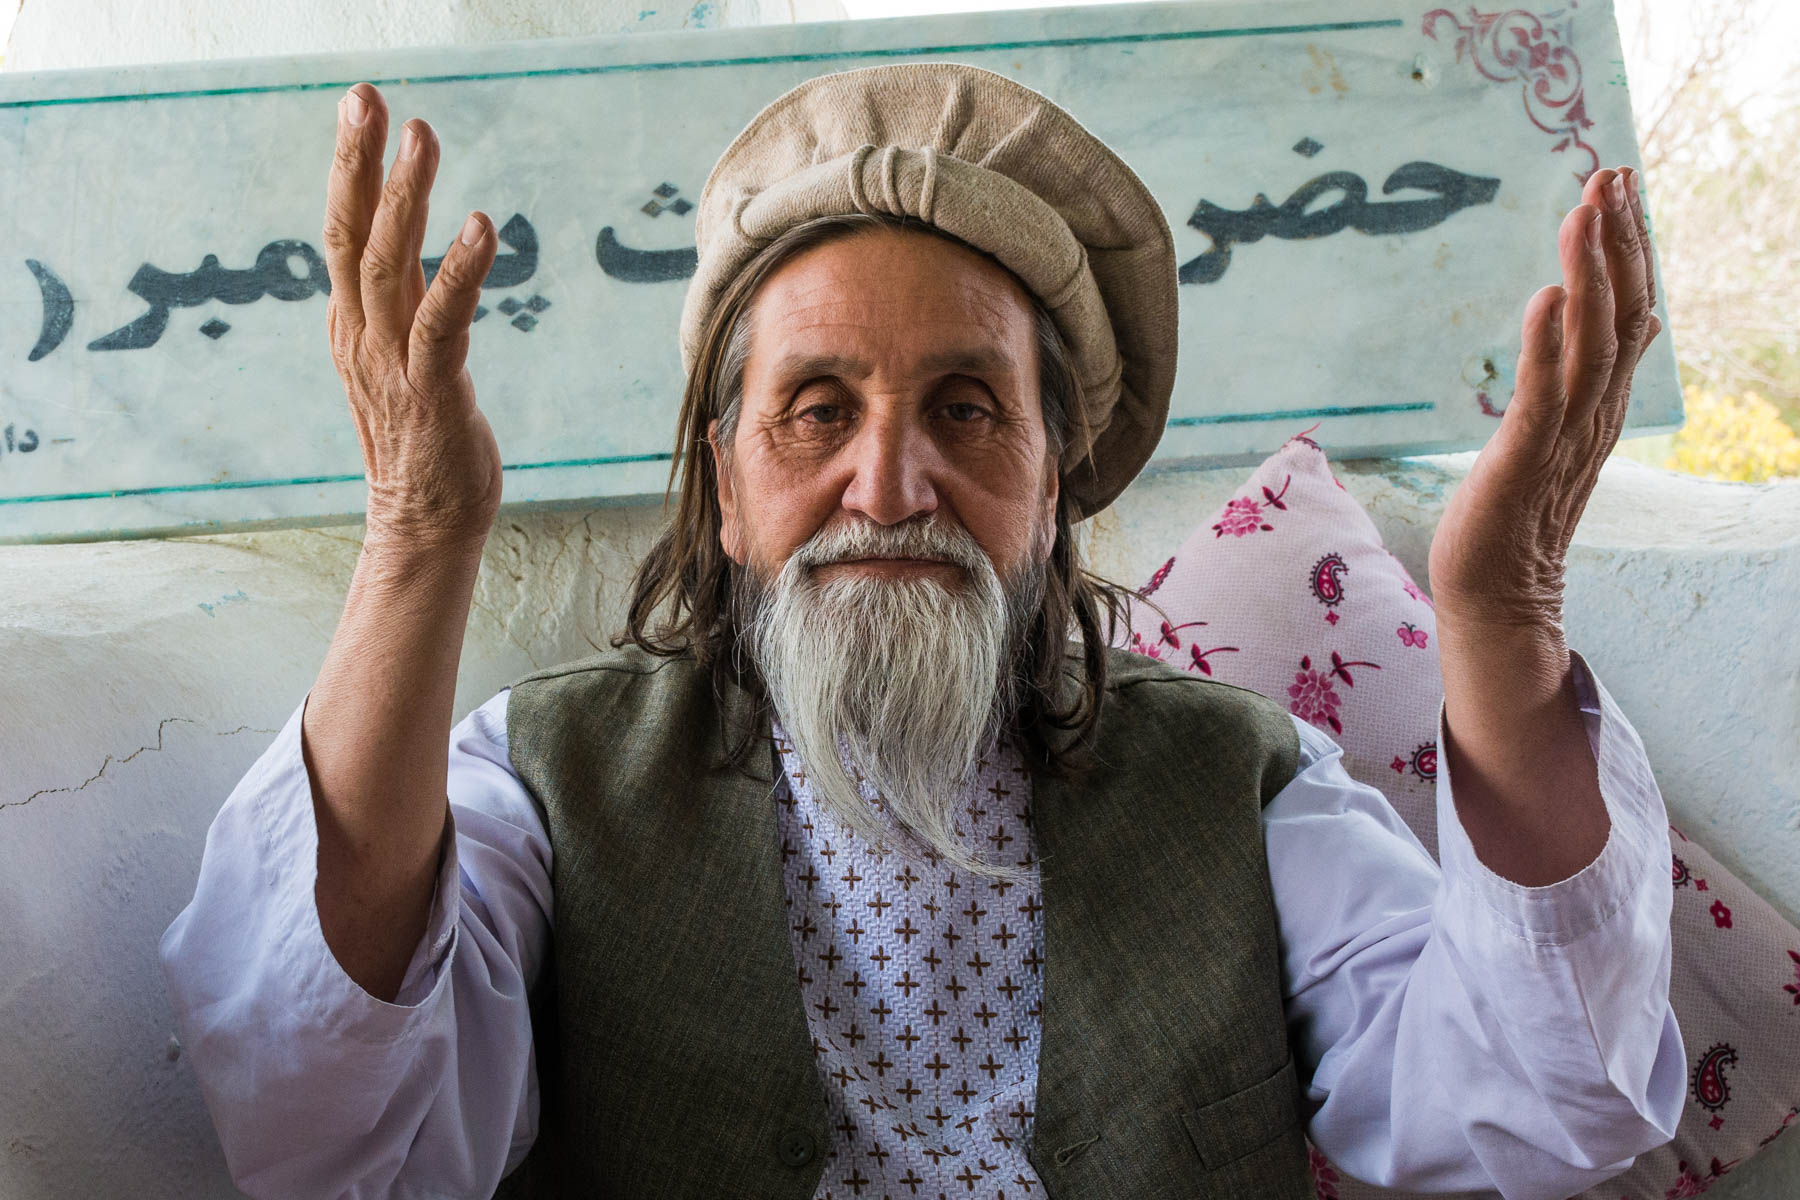 Photos of Balkh, Afghanistan - Caretaker of a Sufi shrine in a traditional Afghan pakol hat - Lost With Purpose